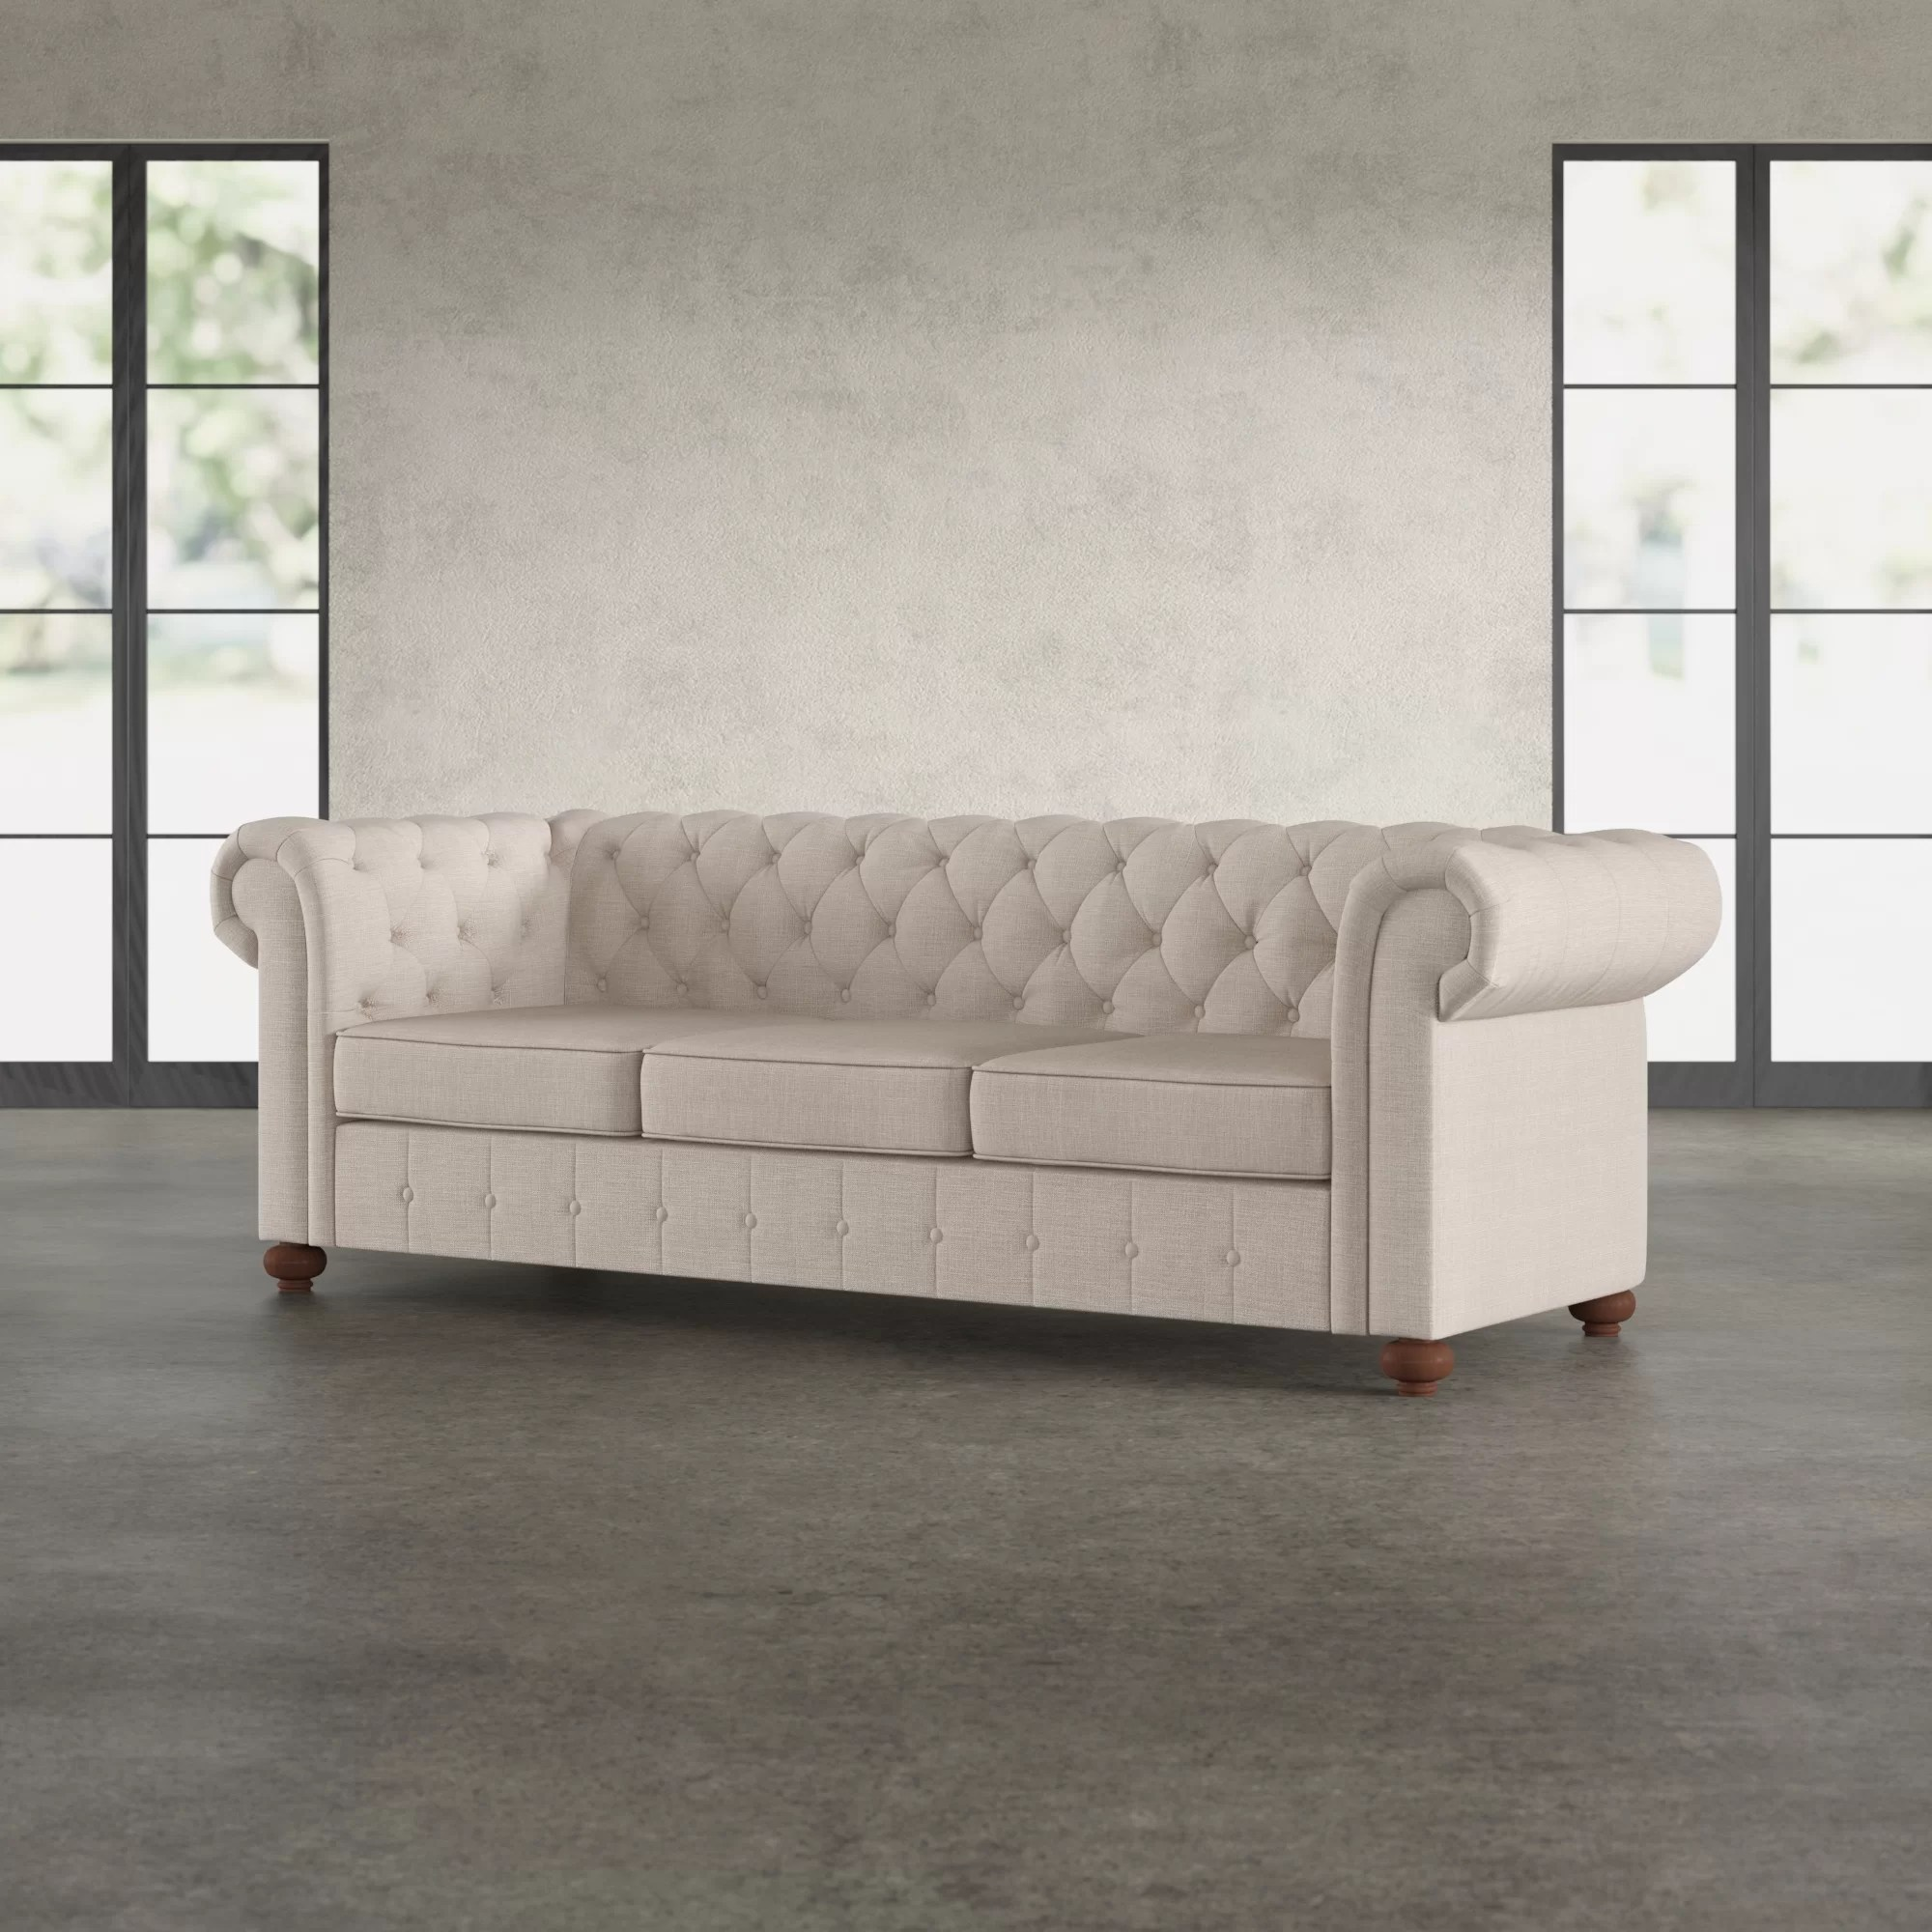 Chesterfield Lounge Quitaque Chesterfield Sofa